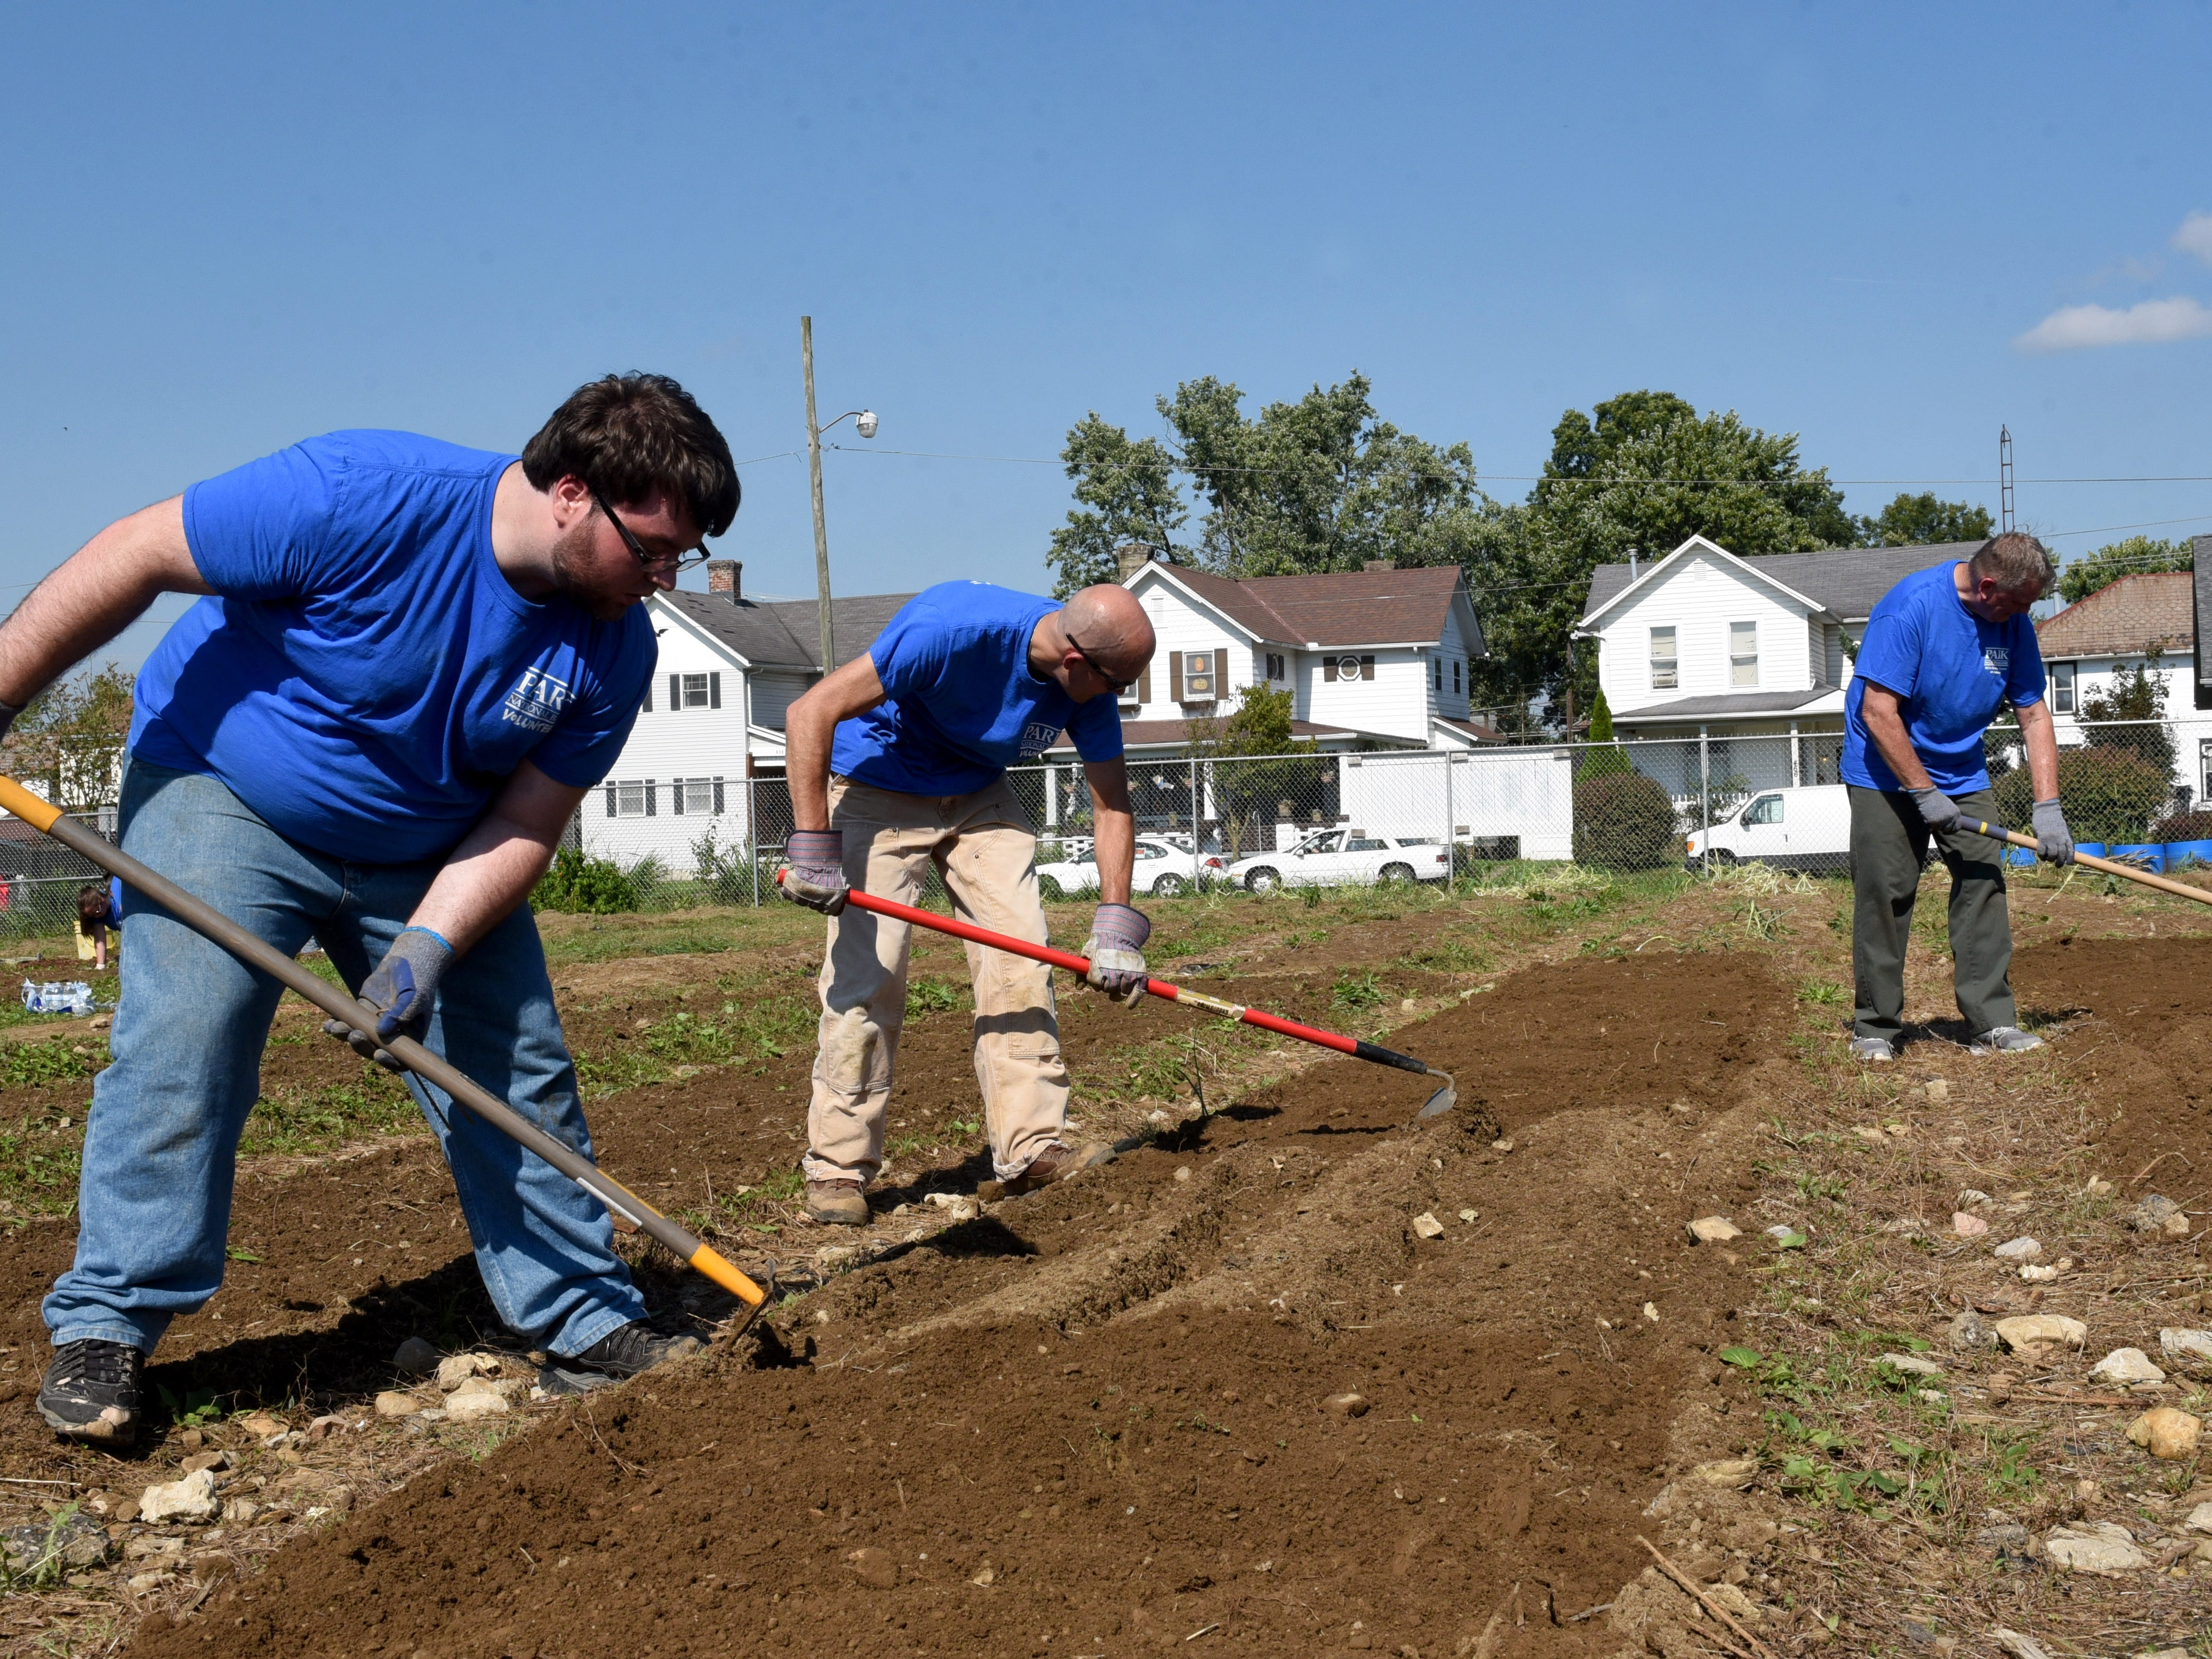 Park National Bank employees Ryan Blauser, David Trautman, and Phil West till the ground at the Together We Grow Garden on East Main Street in Newark. Bank employees volunteered at the garden to prepare it for winter as part of the company's PNB Cares initiative on Monday, Oct. 8, 2018. Employees worked on over 70 projects for organizations in Central Ohio communities. Local projects also included landscaping at the Weathervane Playhouse, organizing books for the Licking County Library, and painting for the Licking County Coalition for Housing.